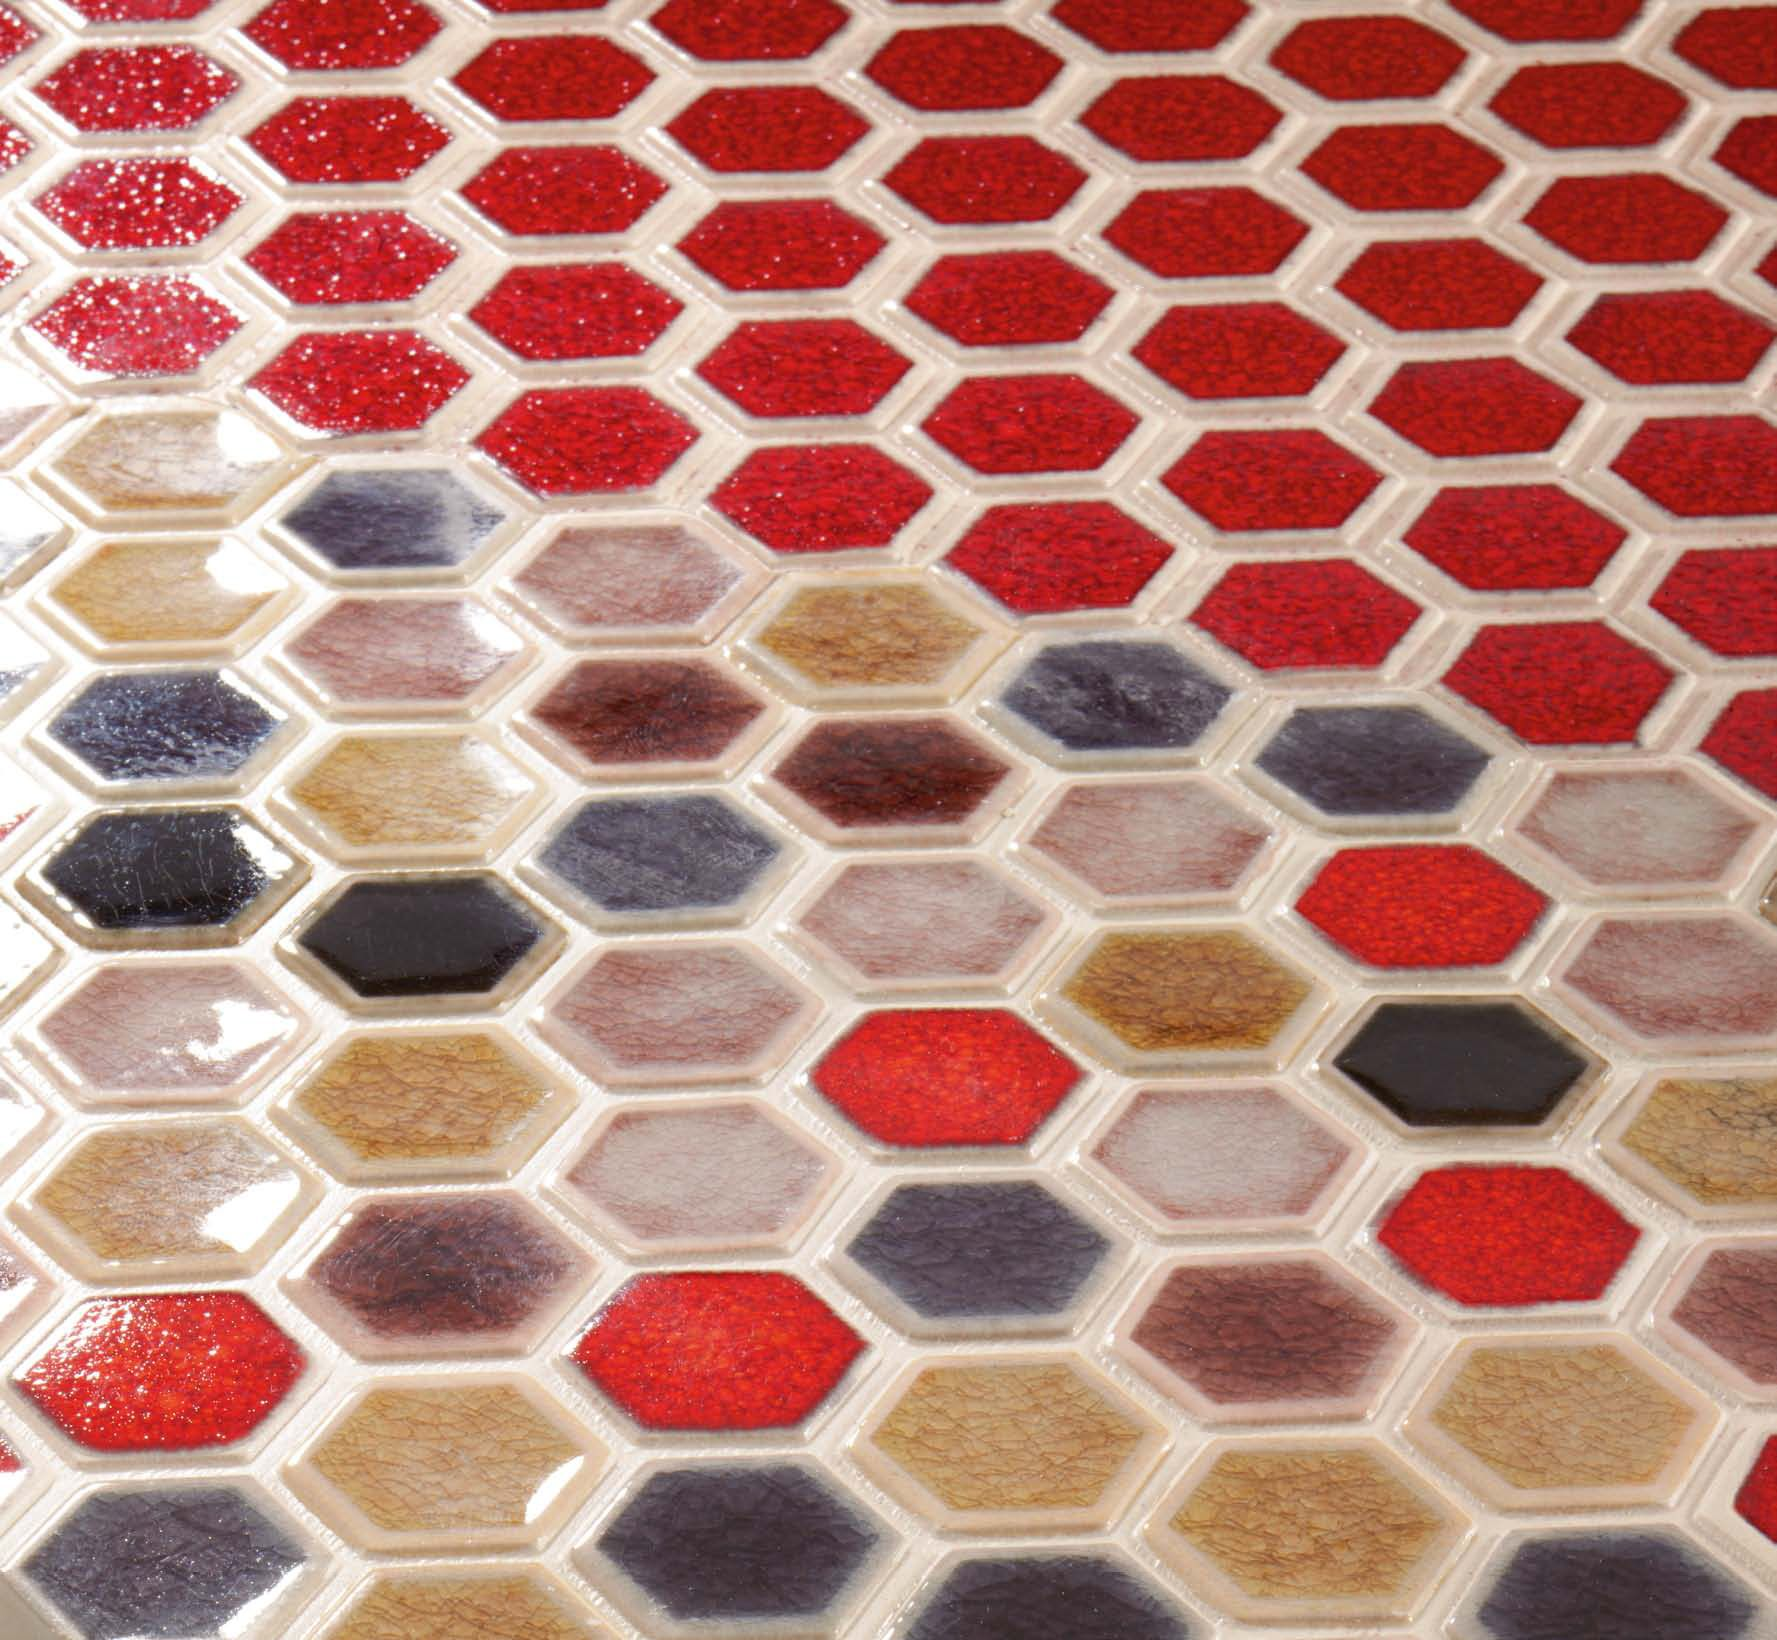 12 Inspirations For Home Improvement With Spanish Home: Natucer Casella Series Tile